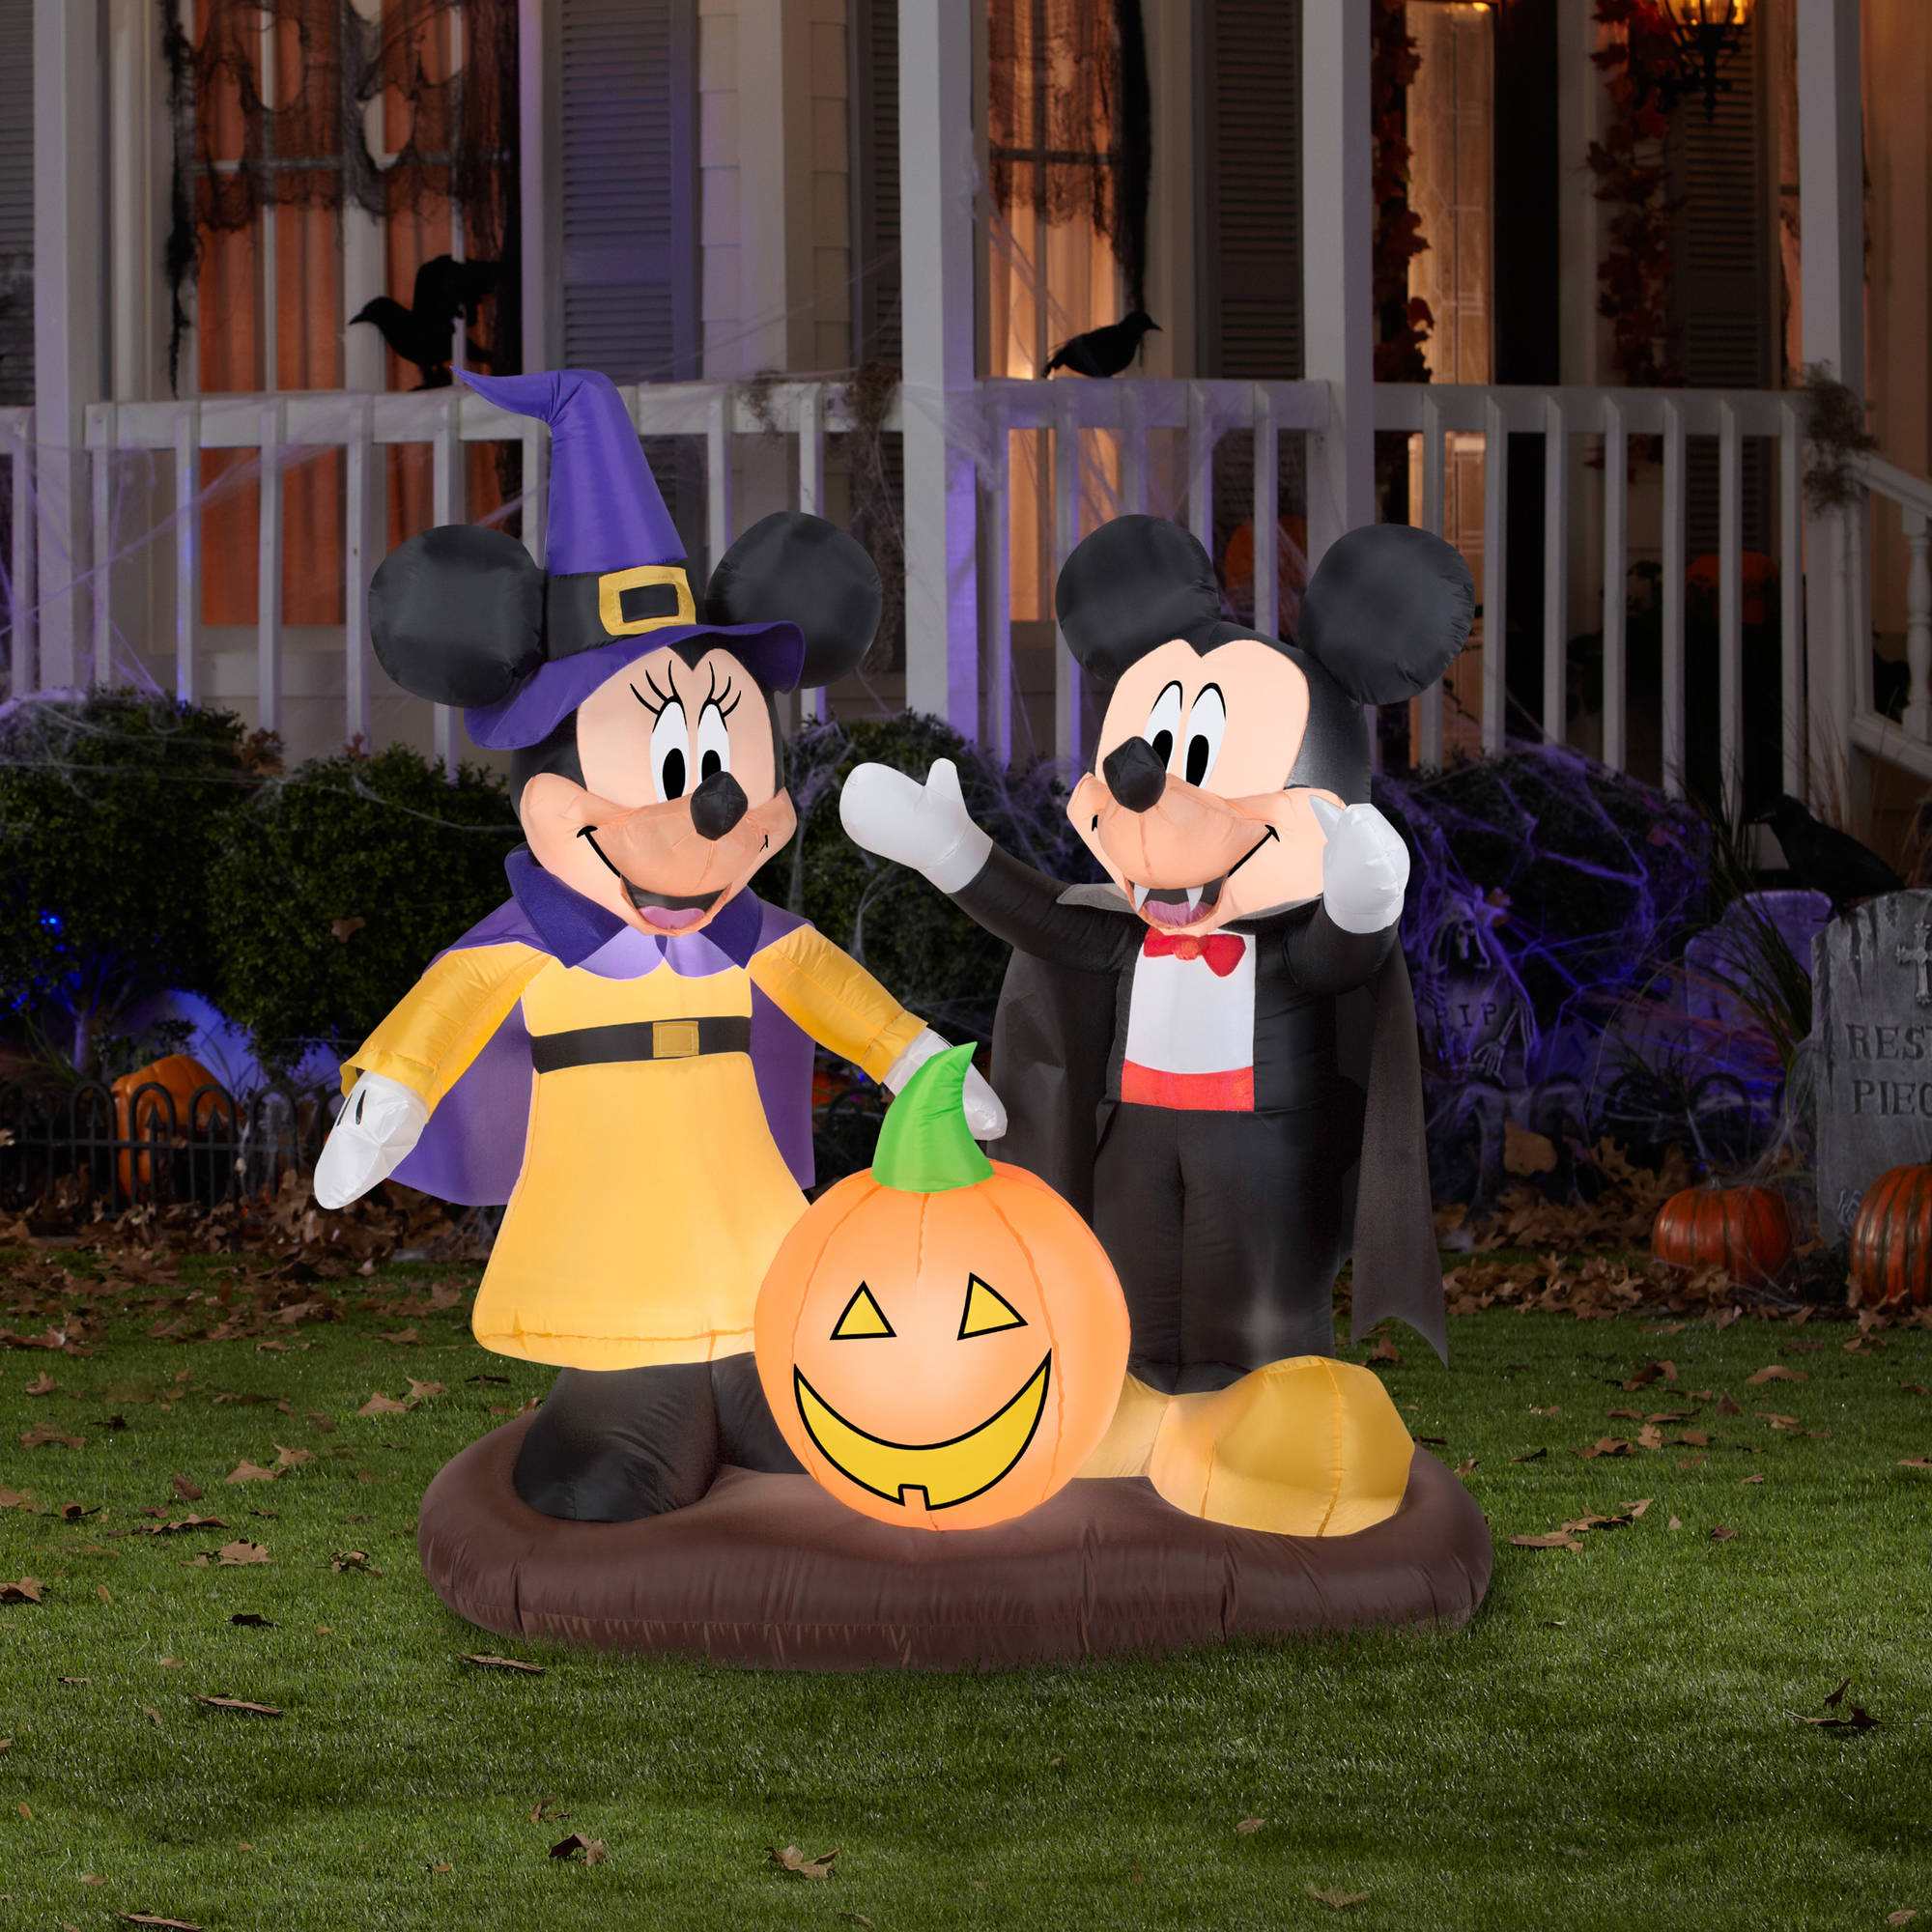 gemmy airblown inflatable 45 x 45 mickey mouse and minnie mouse halloween decoration walmartcom - Halloween Inflatable Yard Decorations